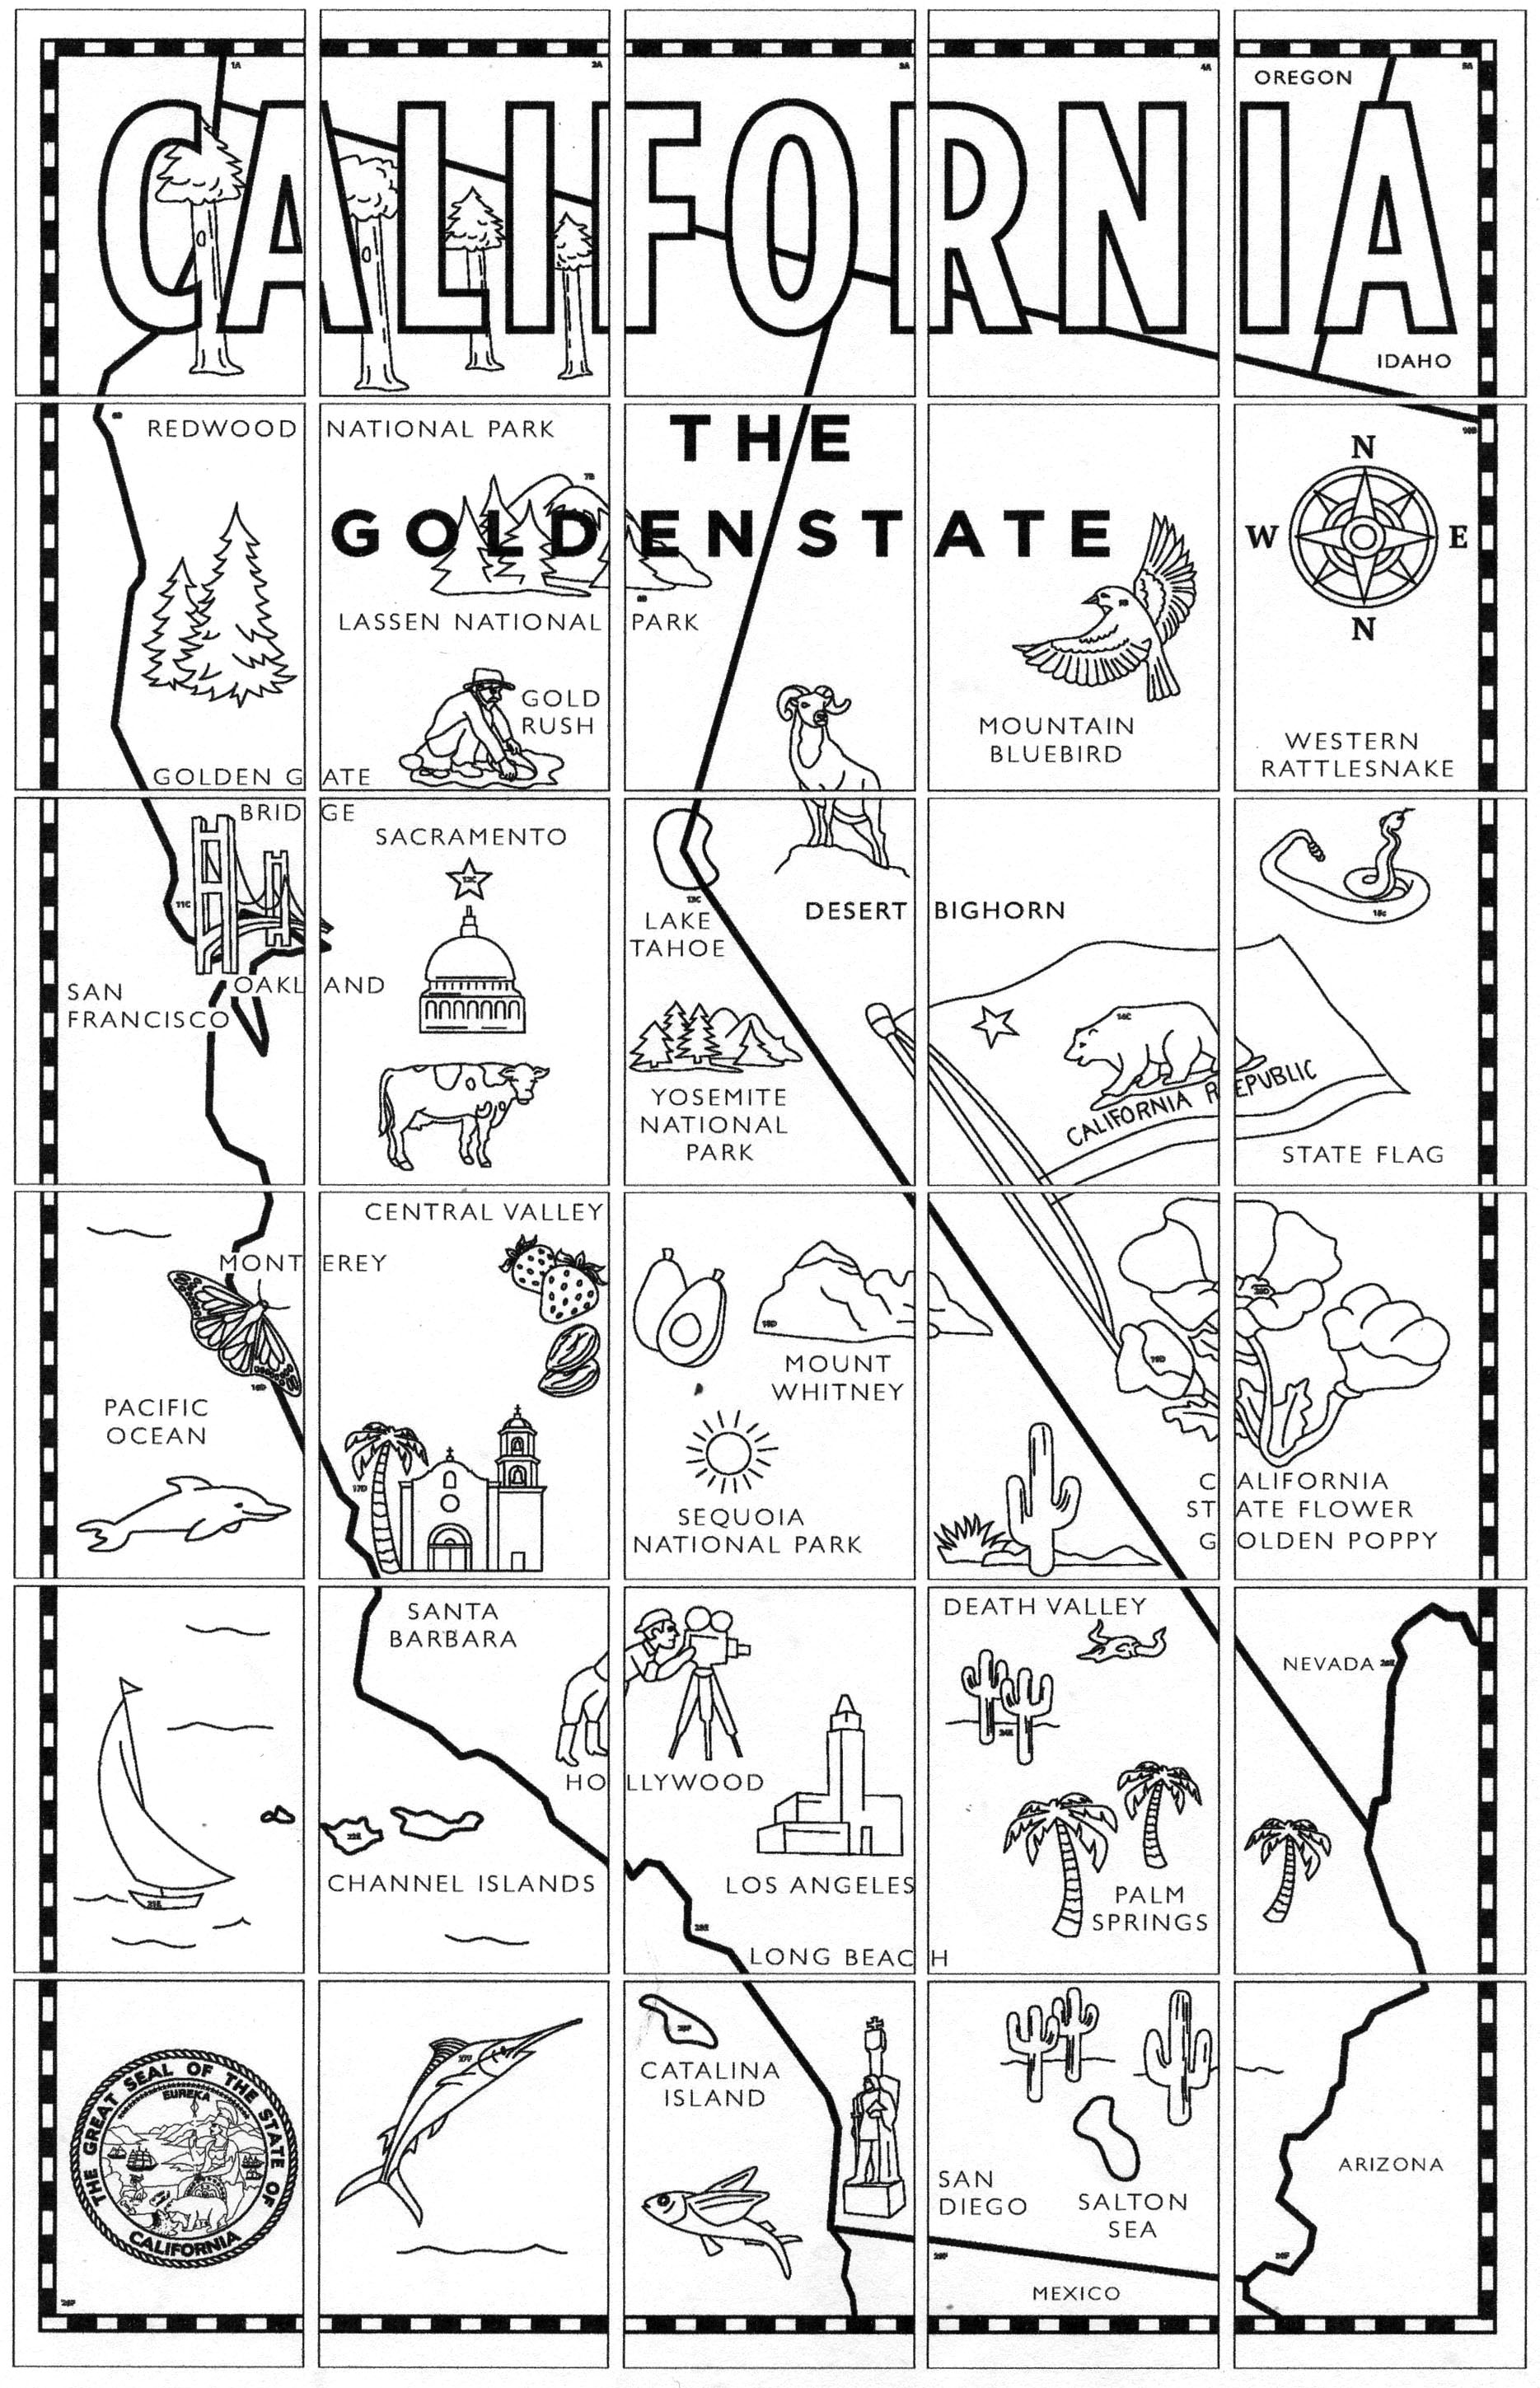 California Map Mural Art Projects For Kids - Ca state map